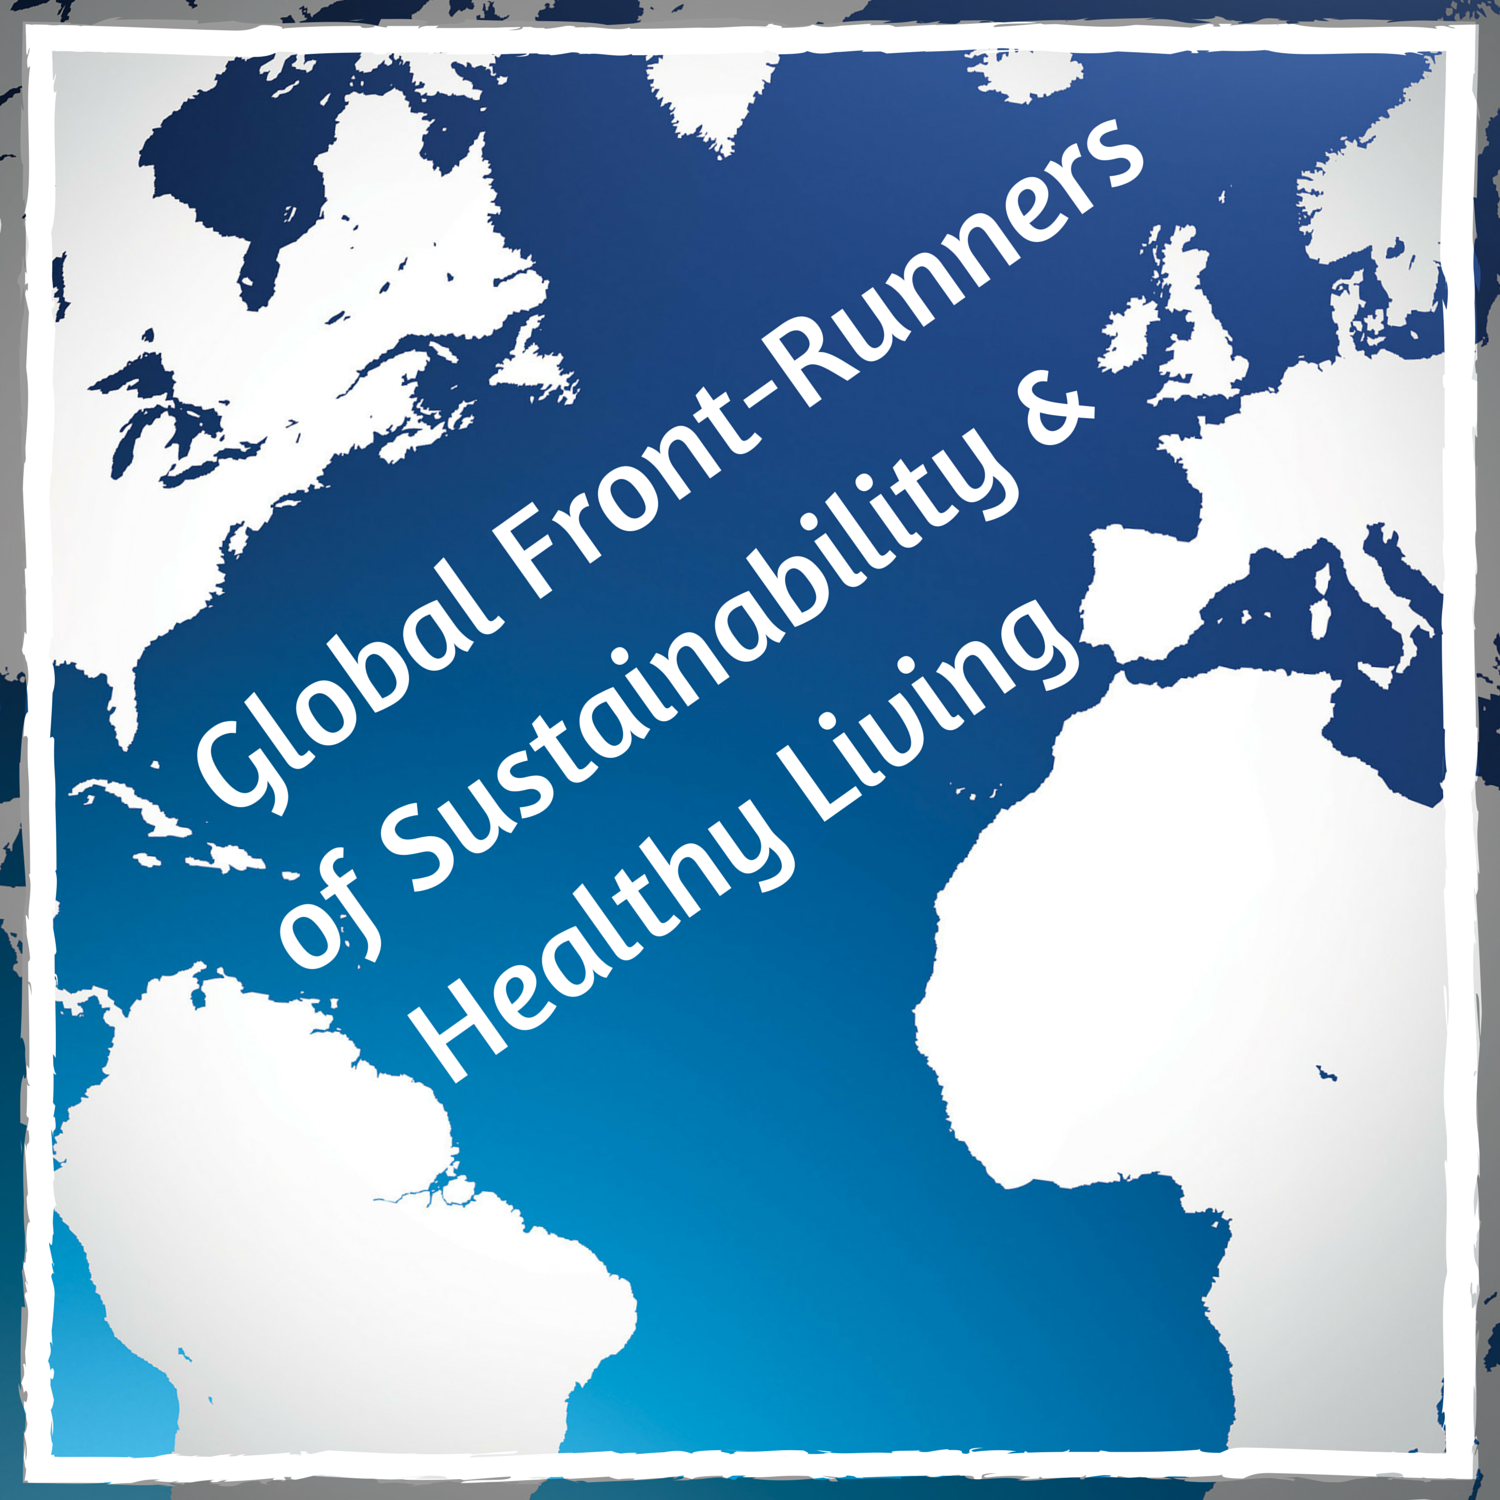 Global Front-Runners of Sustainability & Healthy Living | HOLE STORIES